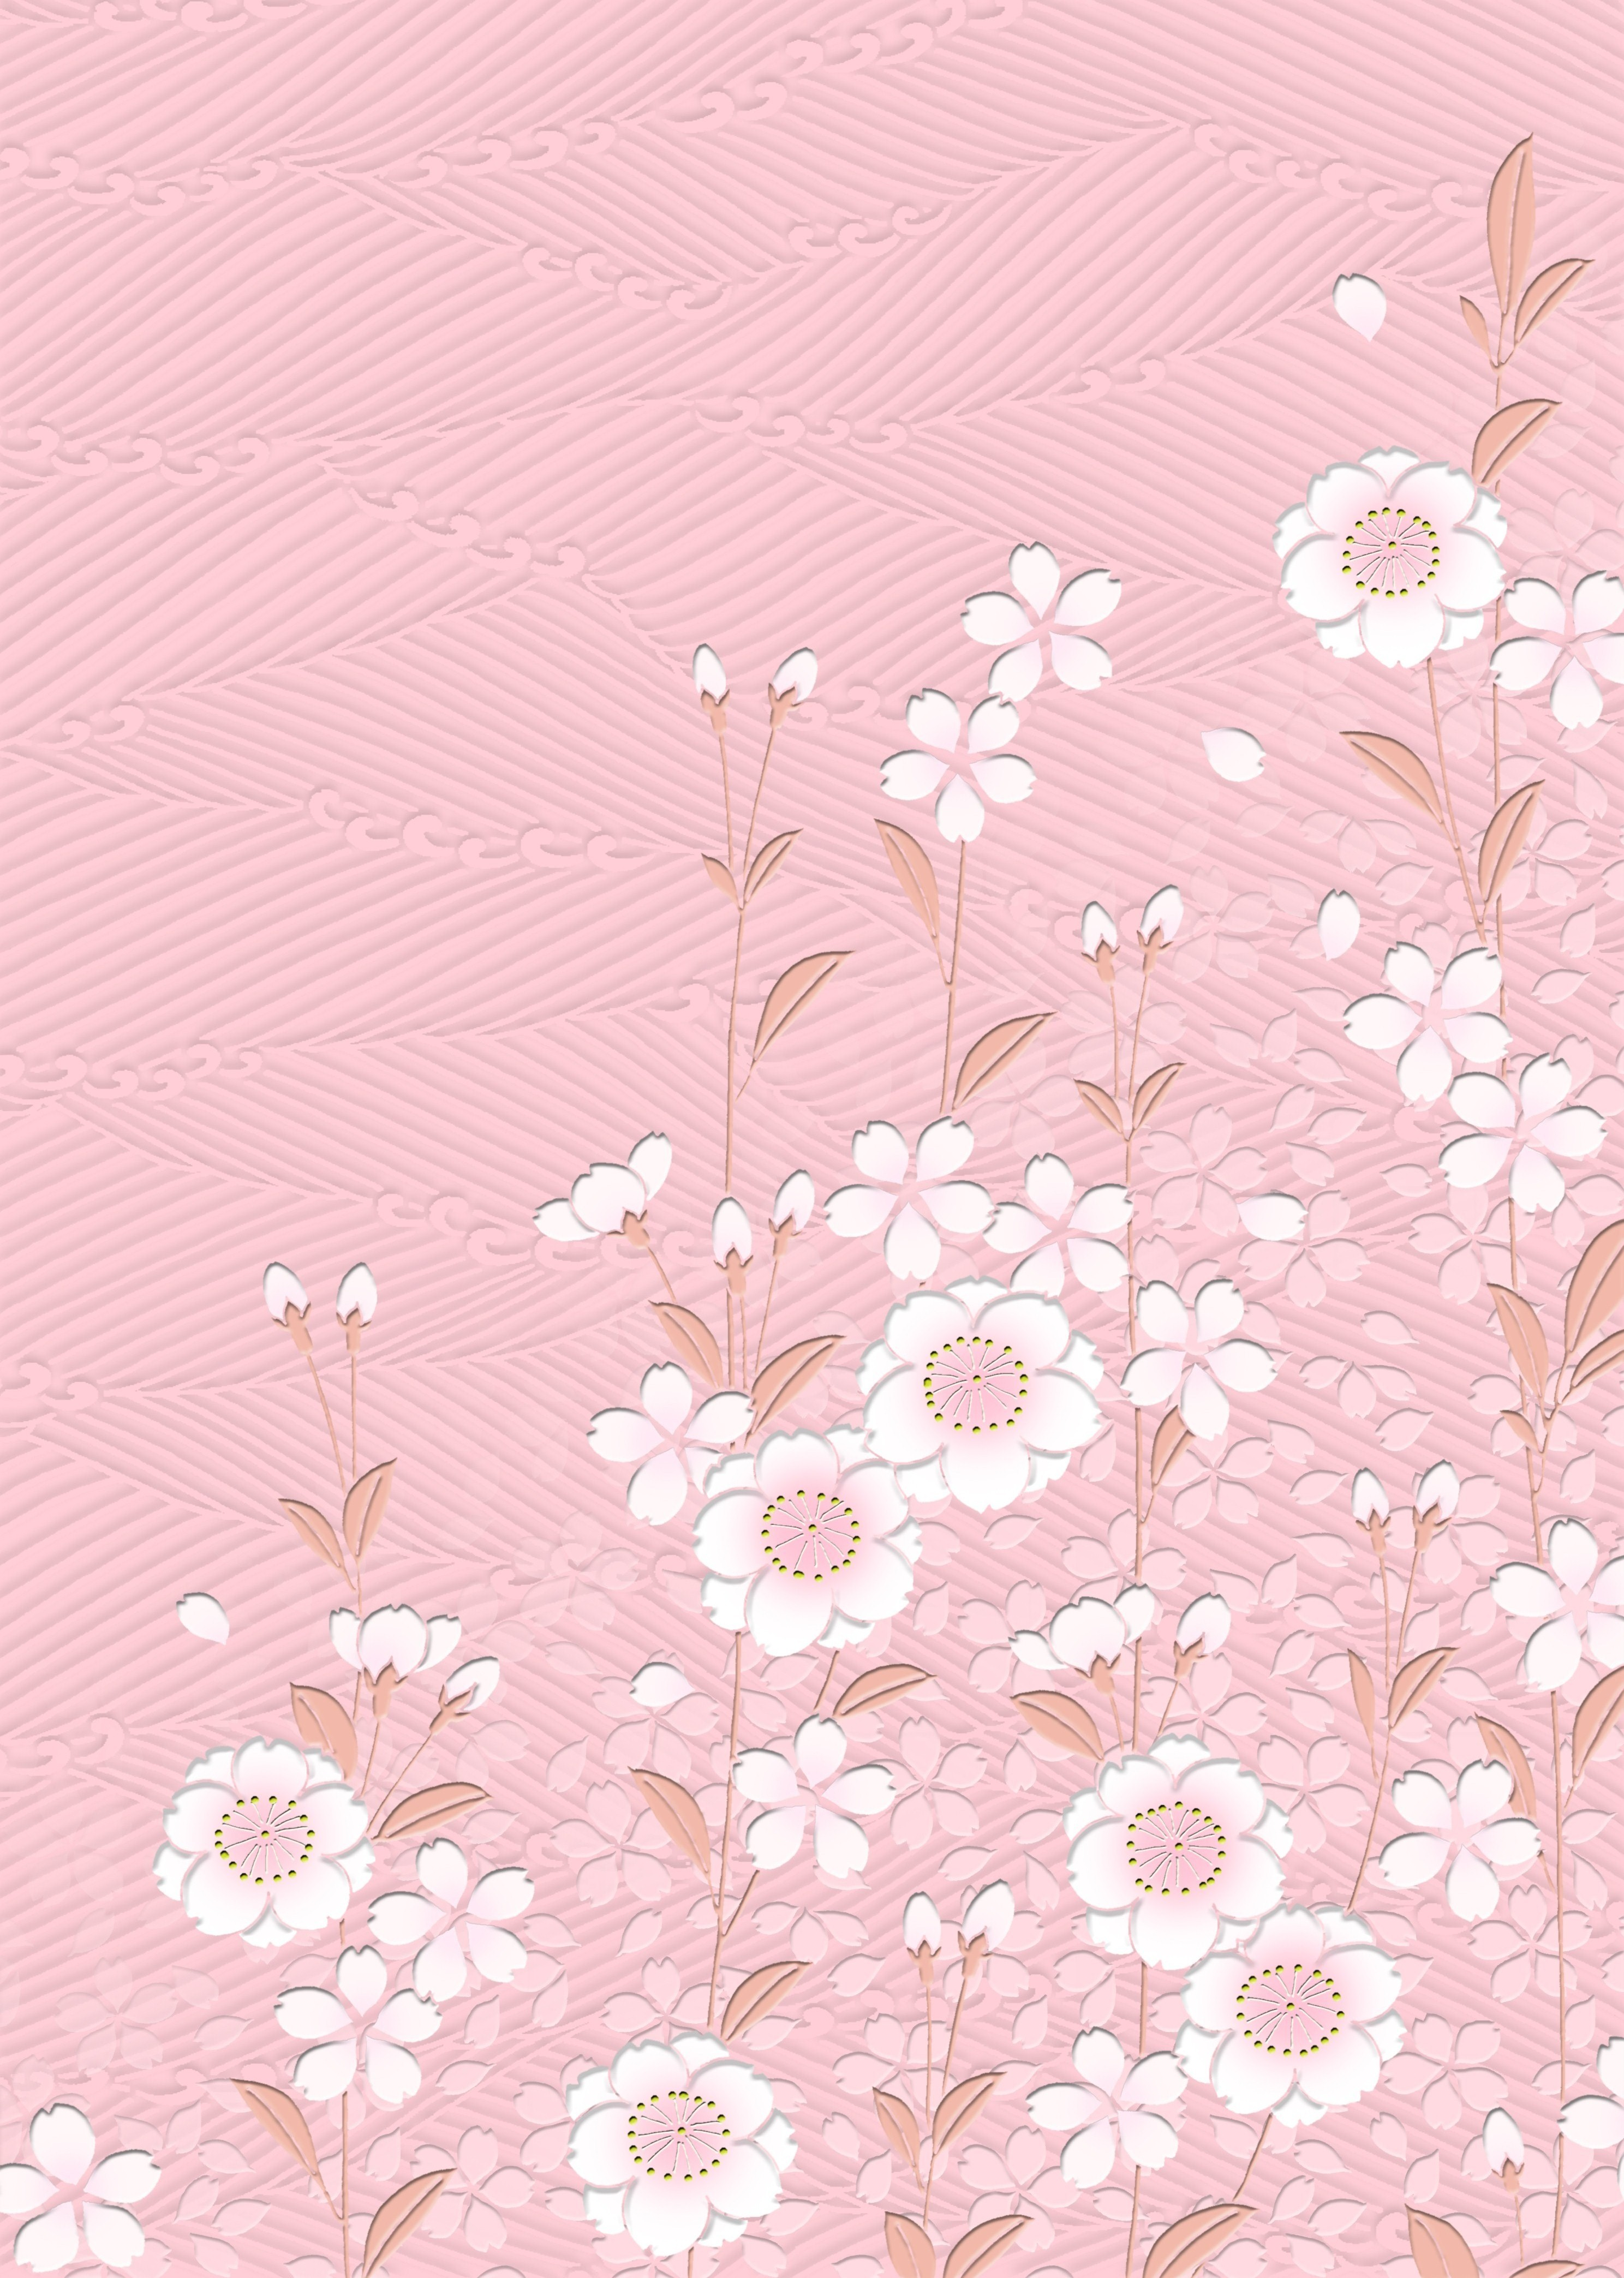 13994 download wallpaper Flowers, Background screensavers and pictures for free